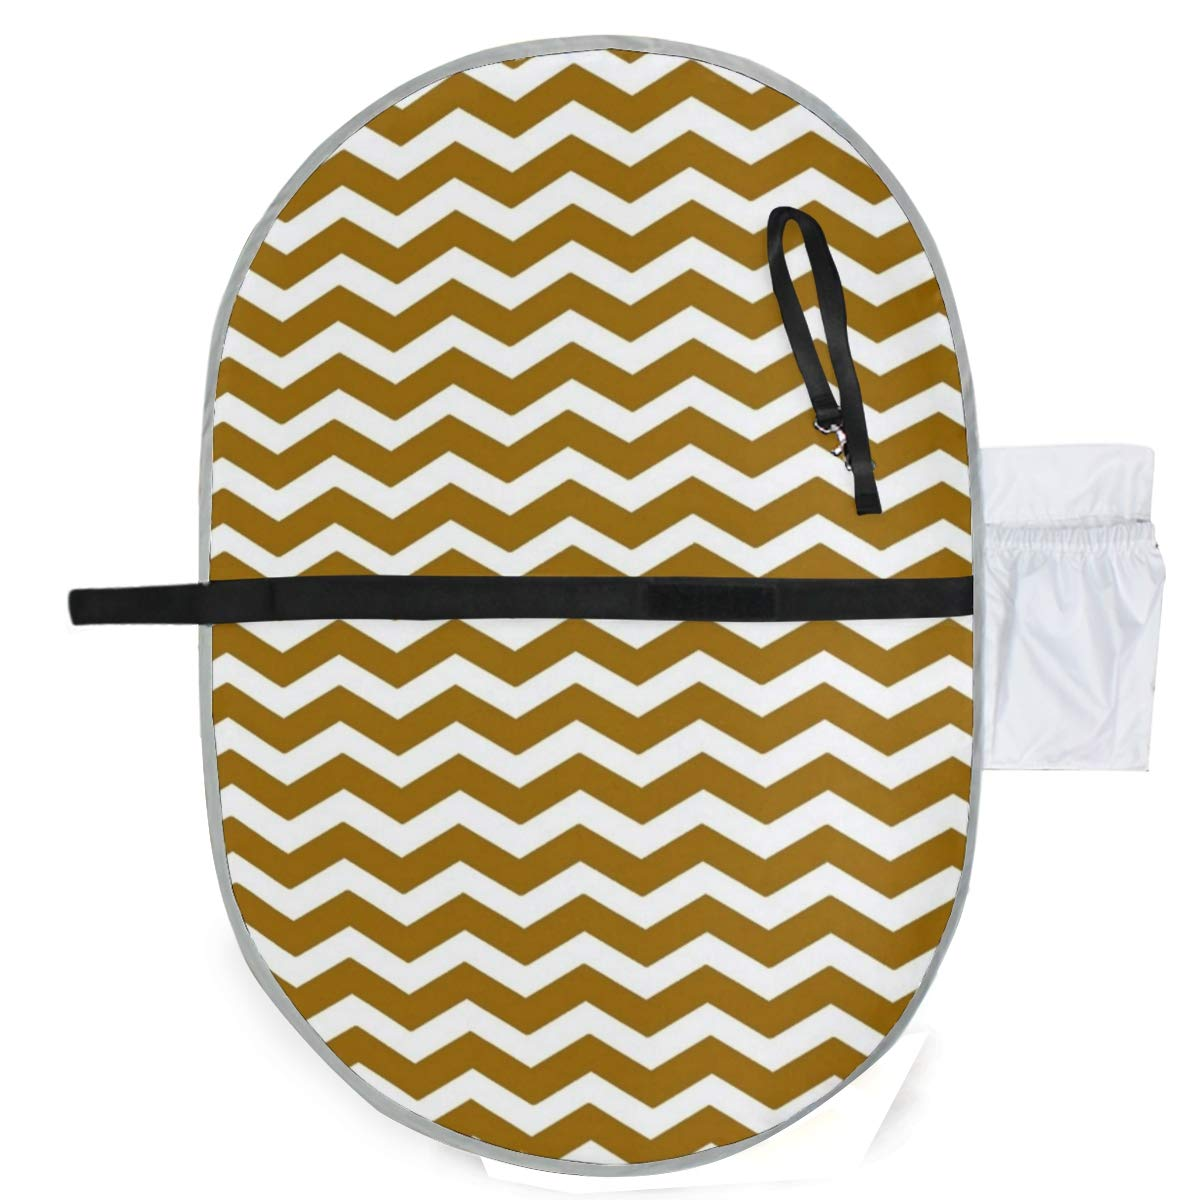 Changing Pad White and Gold Chevron Baby Diaper Incontinence Pad Mat Personalized Toddler Children Pee Pads Sheet for Any Places for Home Travel Bed Play Stroller Crib Car